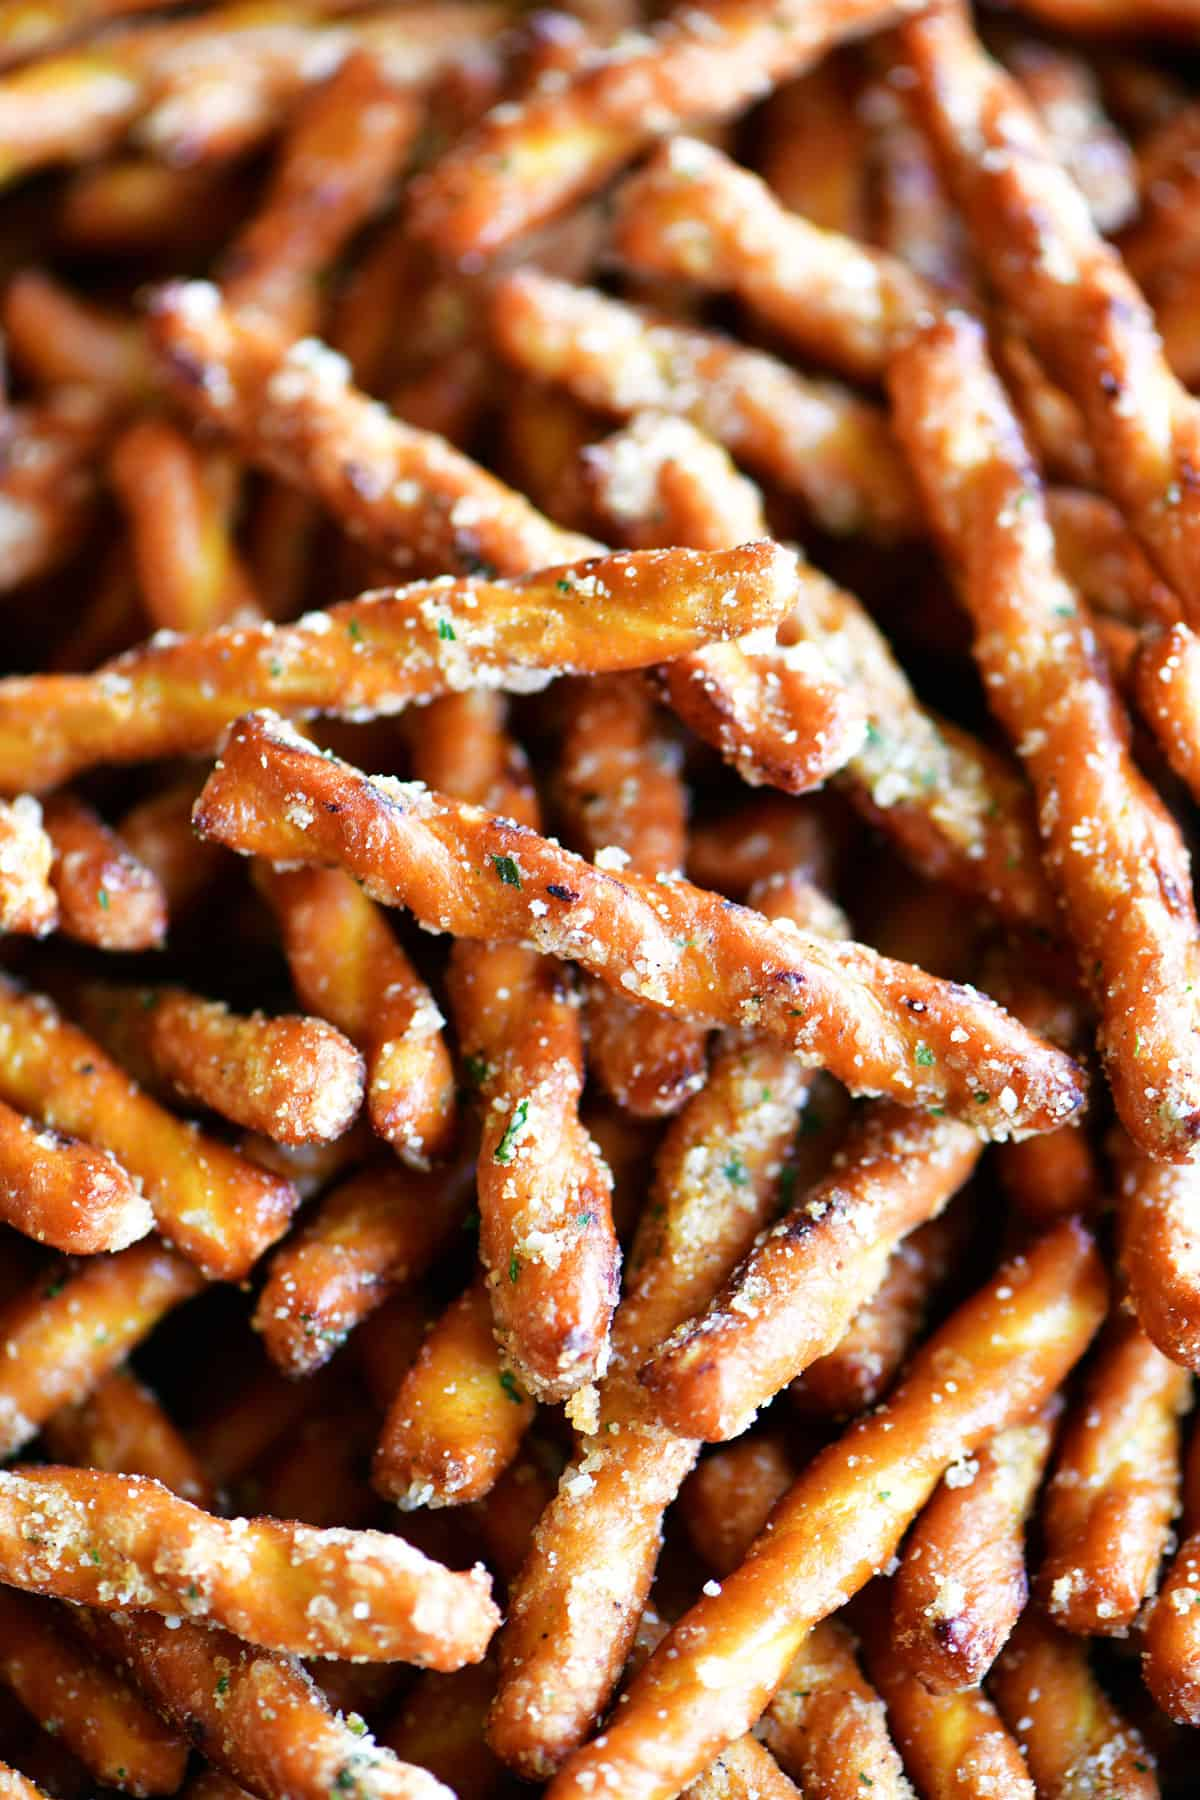 spicy pretzels sticks with ranch seasoning